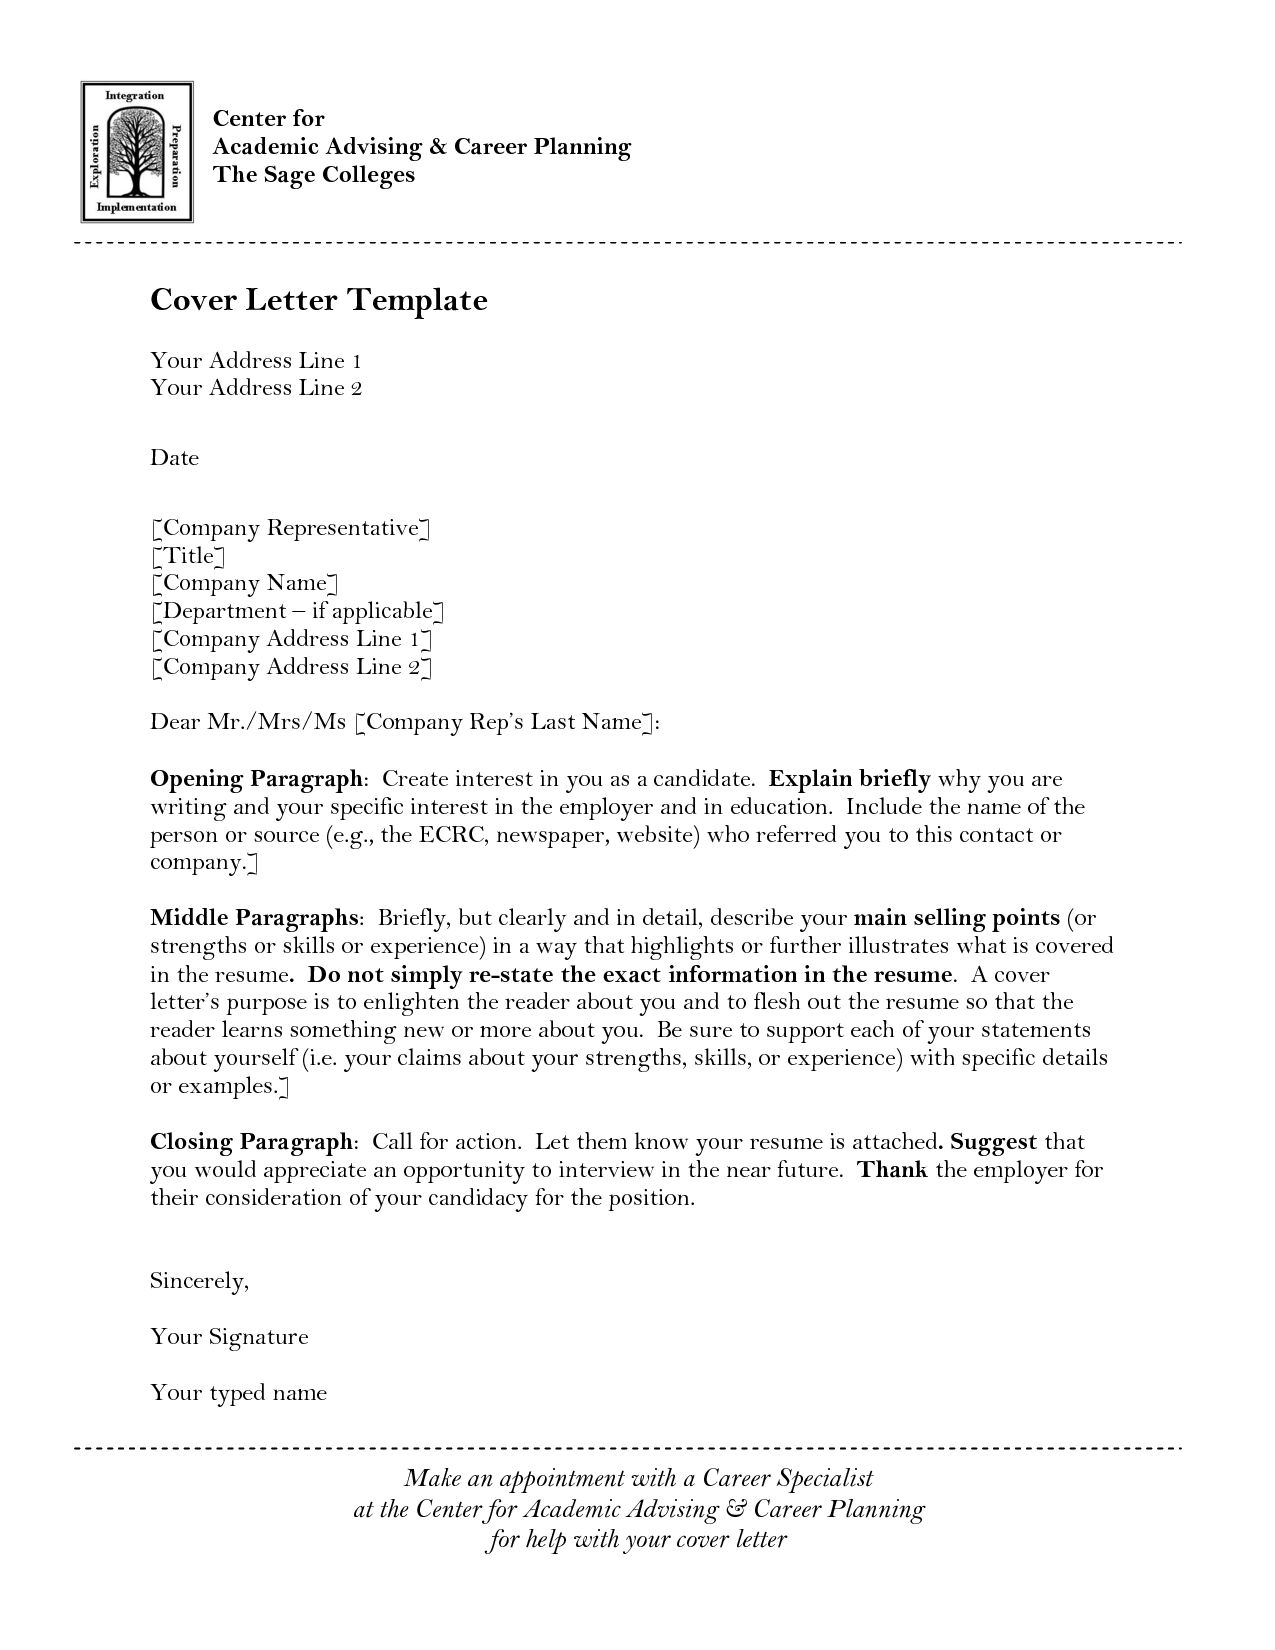 Cover Letter Template University Cover letter template